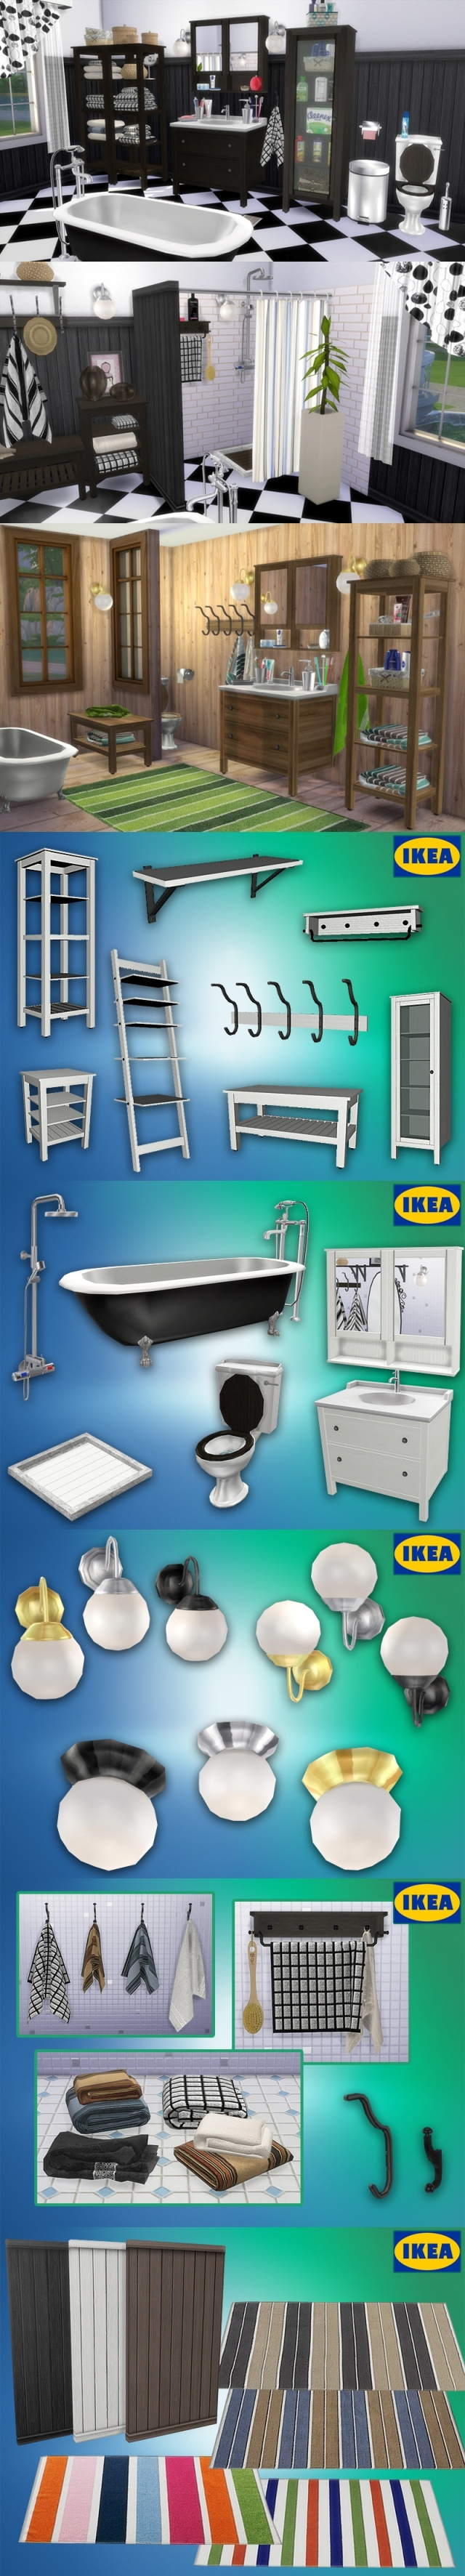 "Ikea Bathroom ""Hemnes"" by Natatanec"